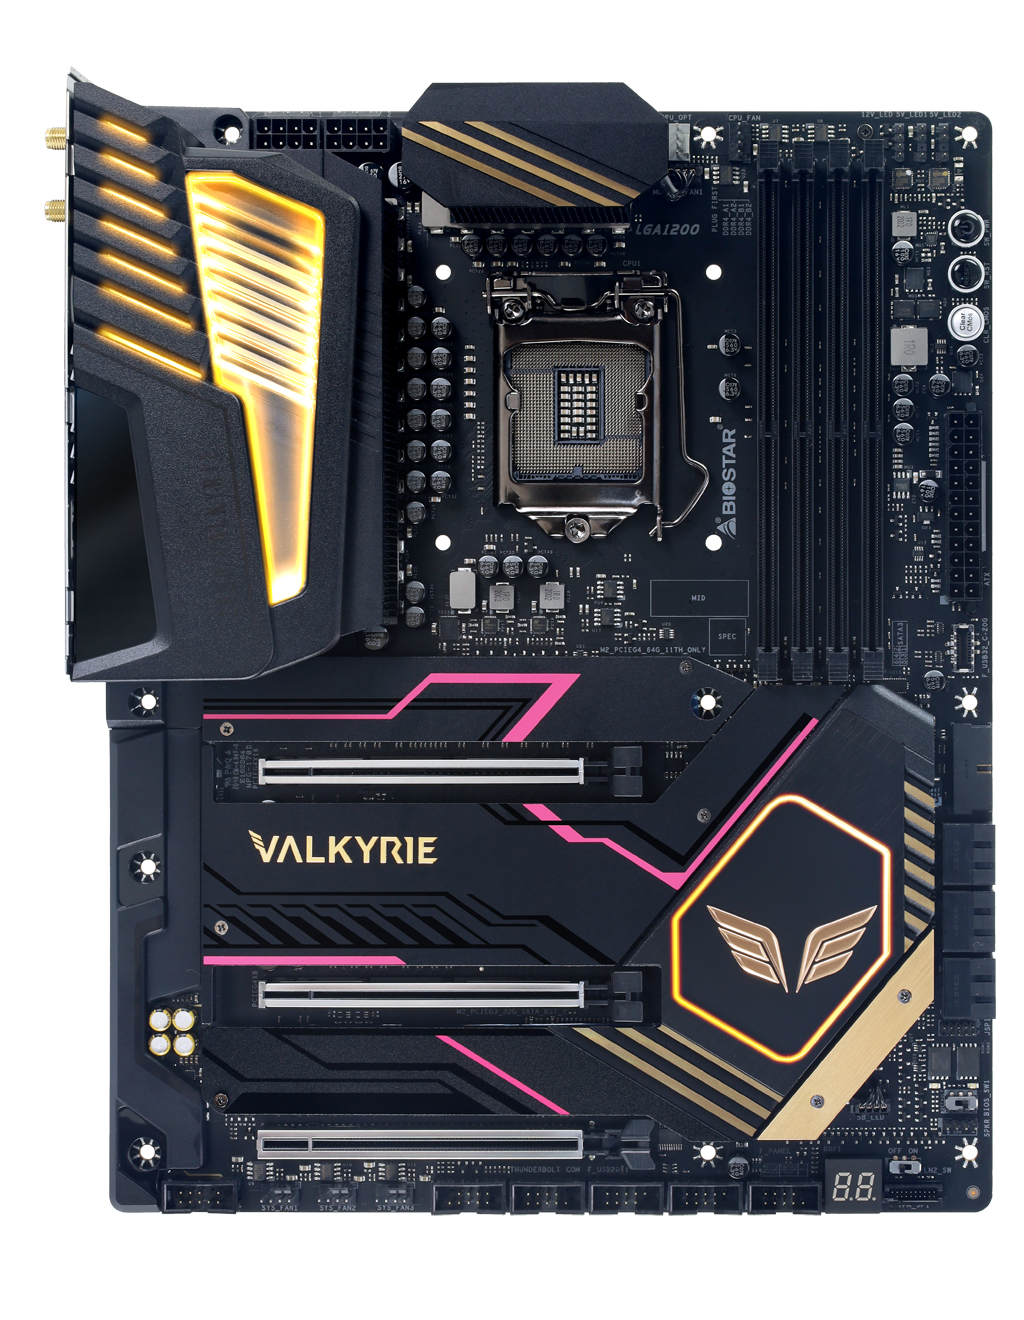 Z590 VALKYRIE INTEL Socket 1200 gaming motherboard